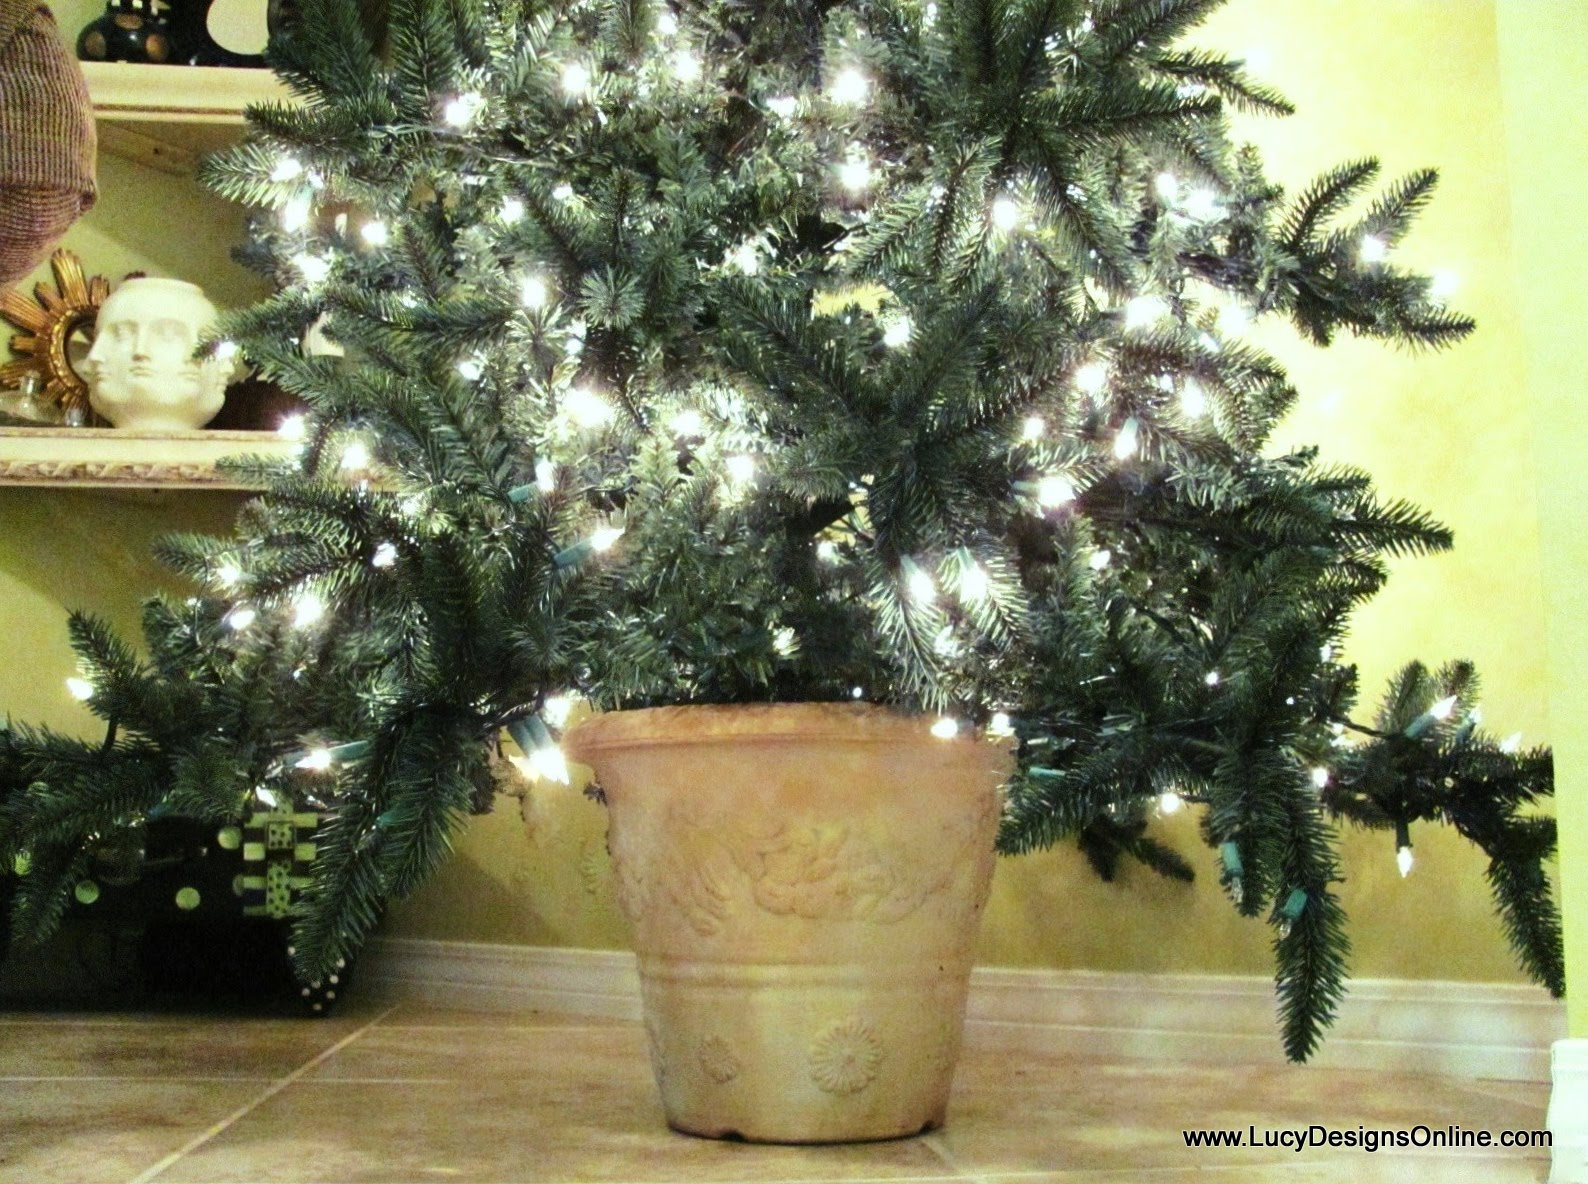 Artificial christmas tree in a planter pot diy lucy designs christmas tree in an urn or pot how to diy solutioingenieria